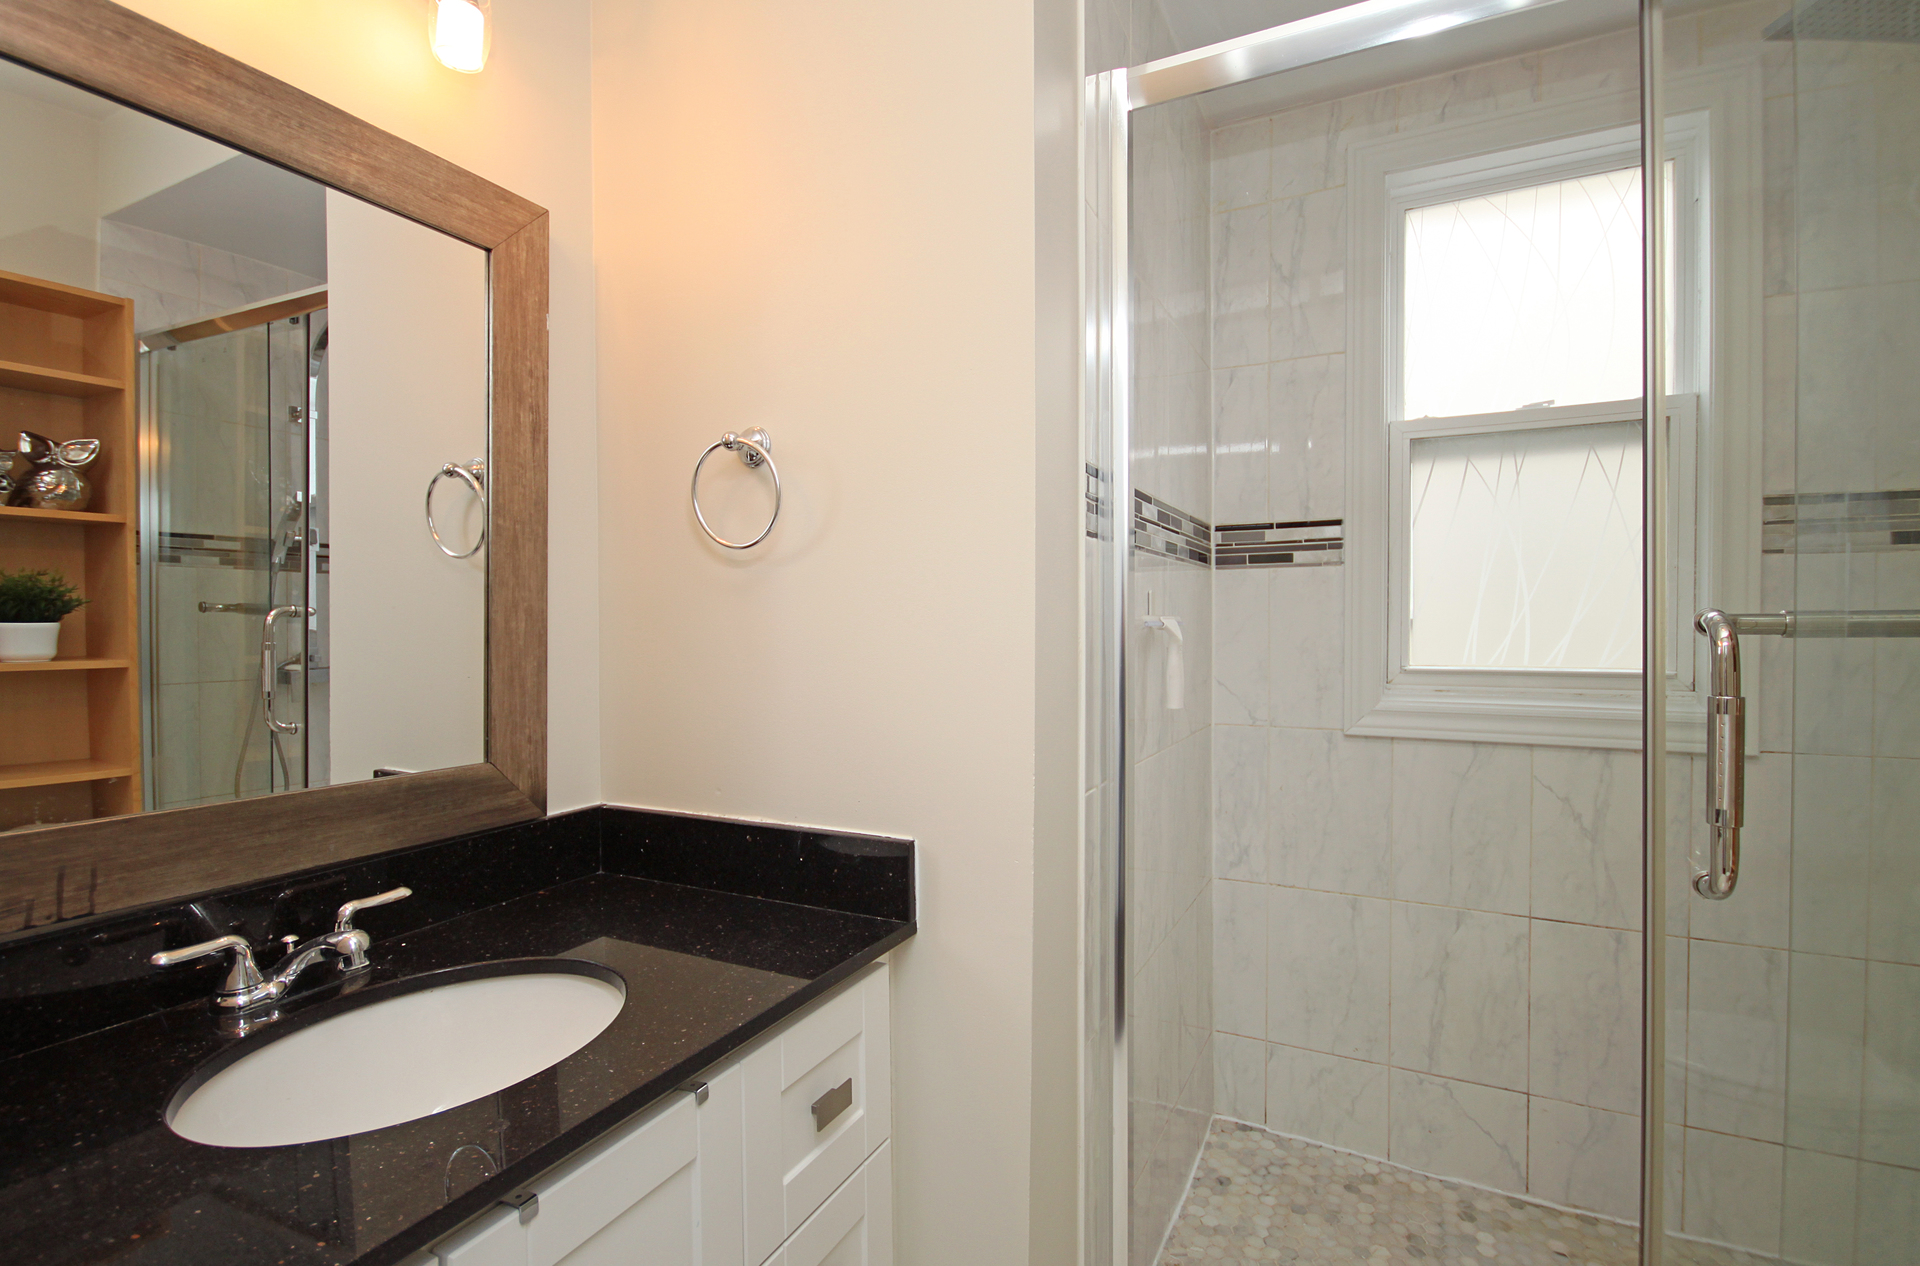 3 Piece Bathroom at 241 Milverton Boulevard, Danforth, Toronto